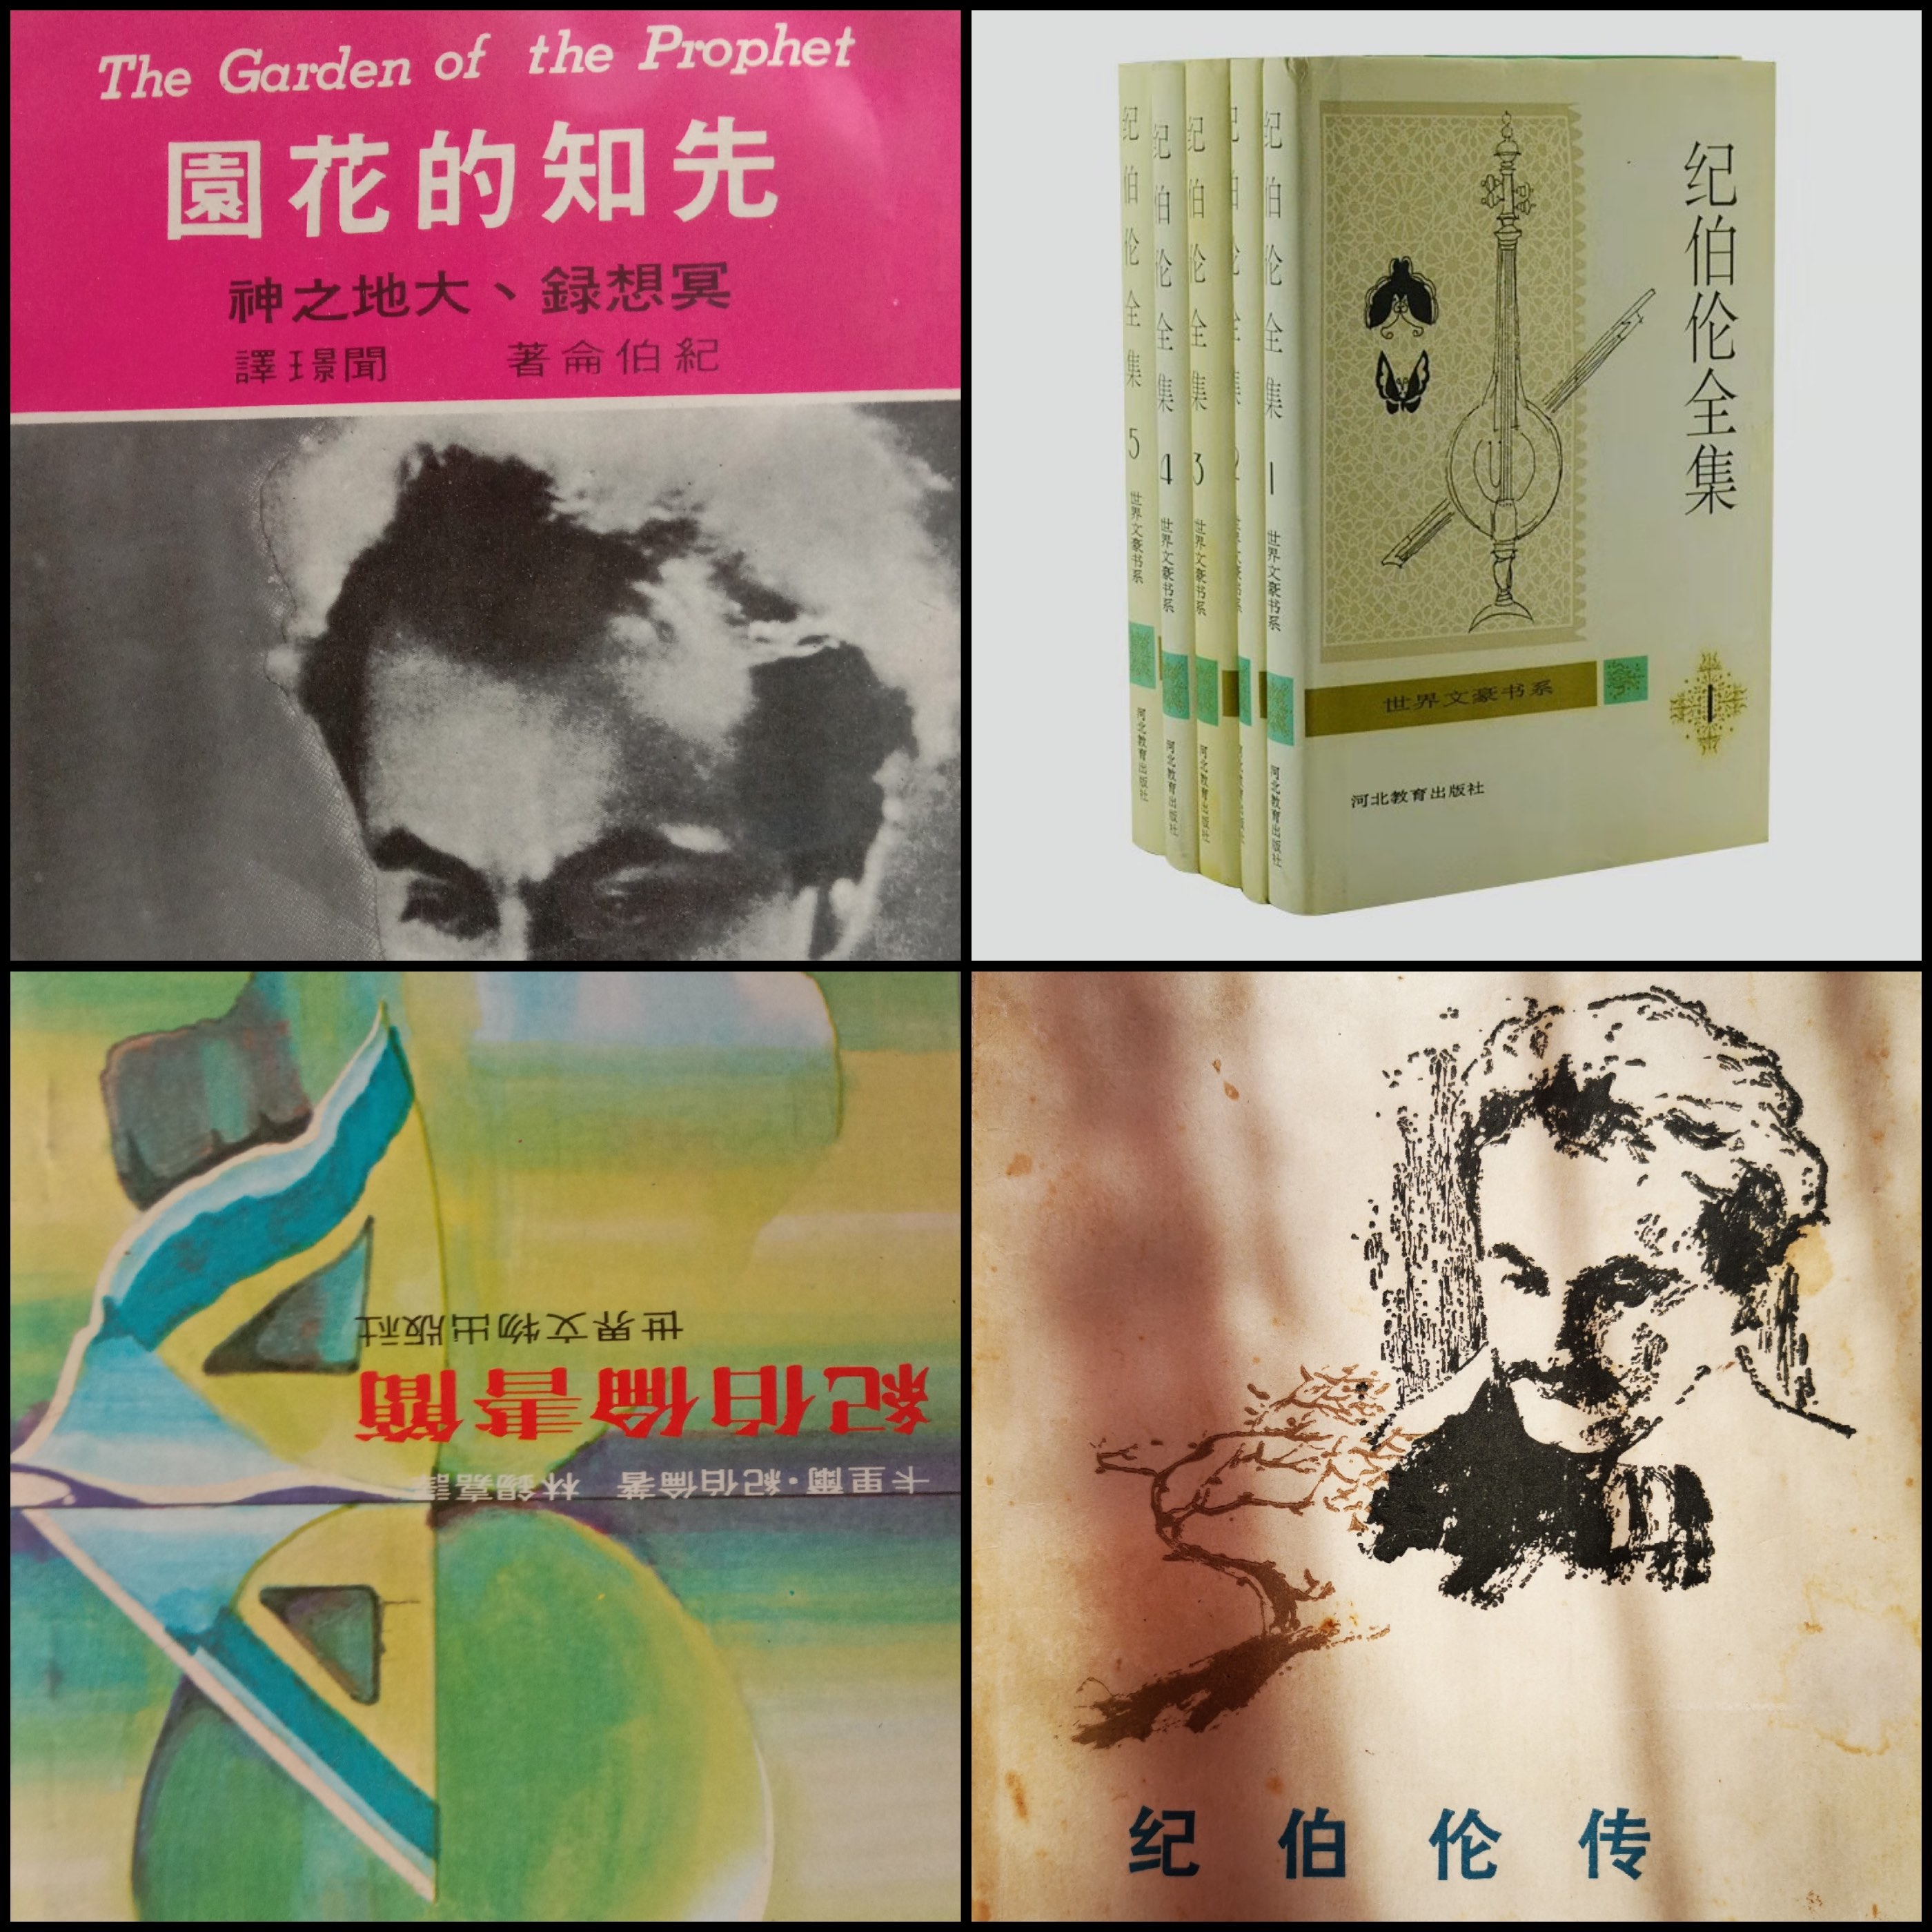 (left to right) The Prophet's Garden (Jing Wen) 1974, The Letters of Gibran (Xijia Lin )1977, The Complete Works of GIbran (Hebei Education Publishing House)1994, The Biography of Gibran (Jingfen Cheng) 1986.